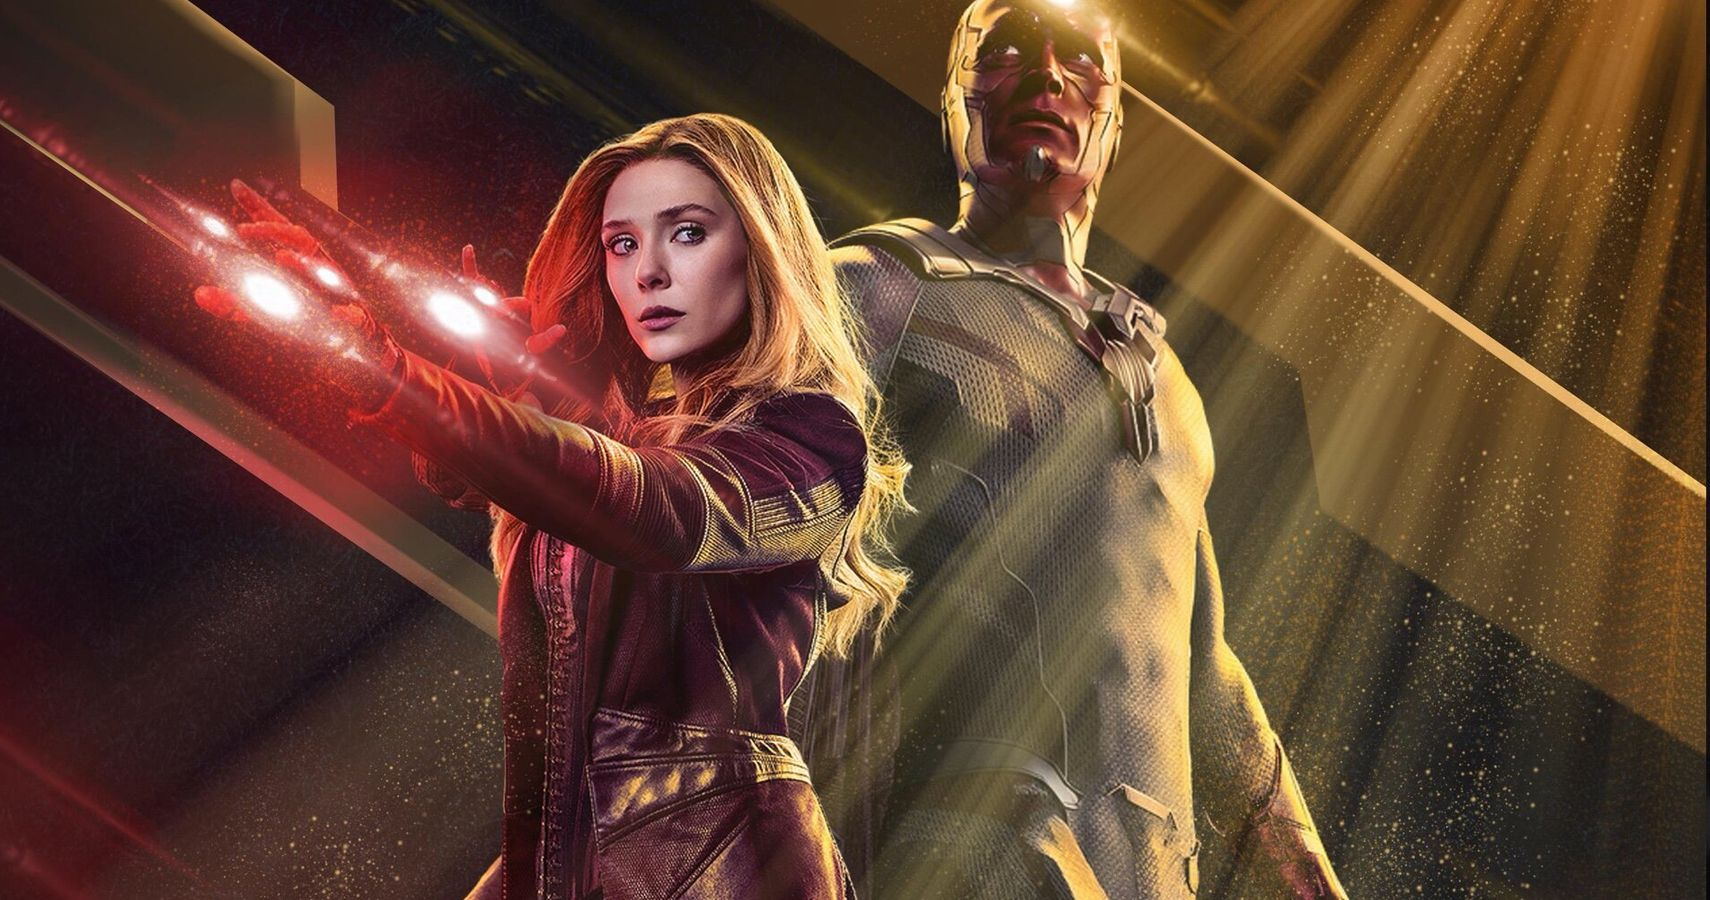 Marvel characters Wanda Maximoff and Vision portrayed by Elizabeth Olsen and Paul Bettany